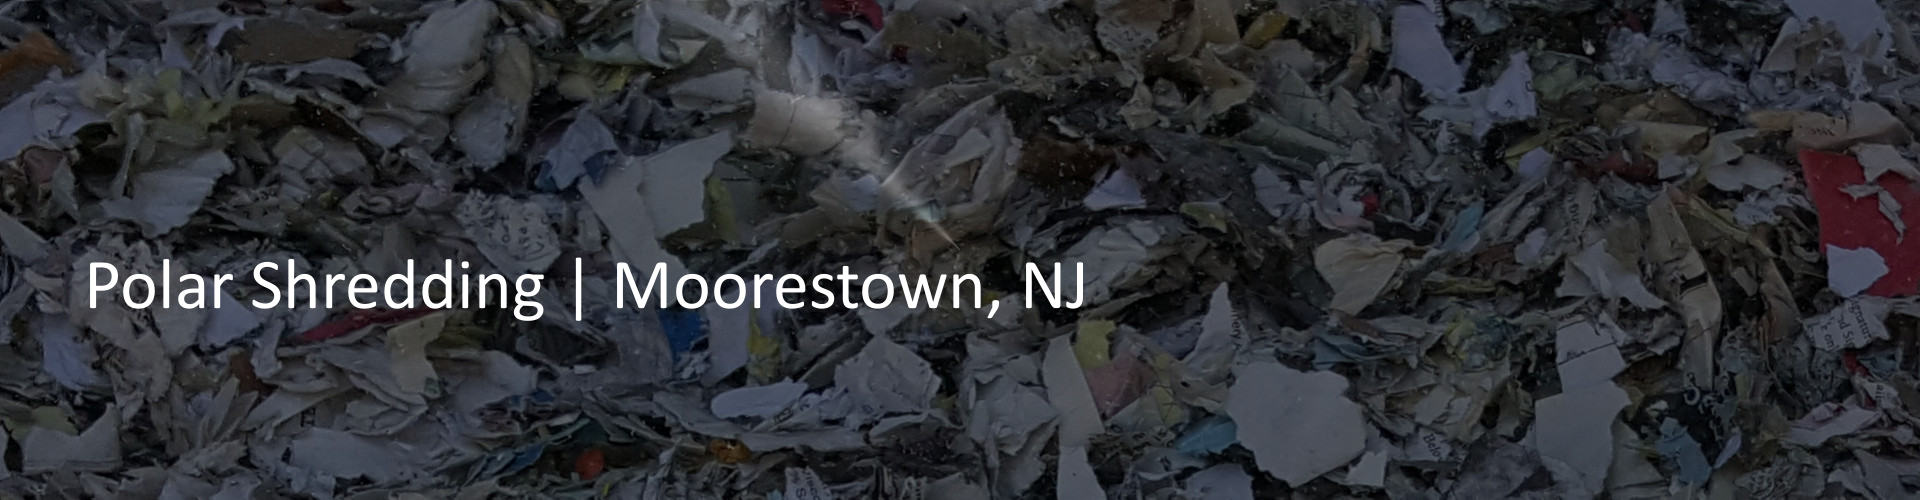 Moorestown NJ Paper Shredding- Polar Shredding